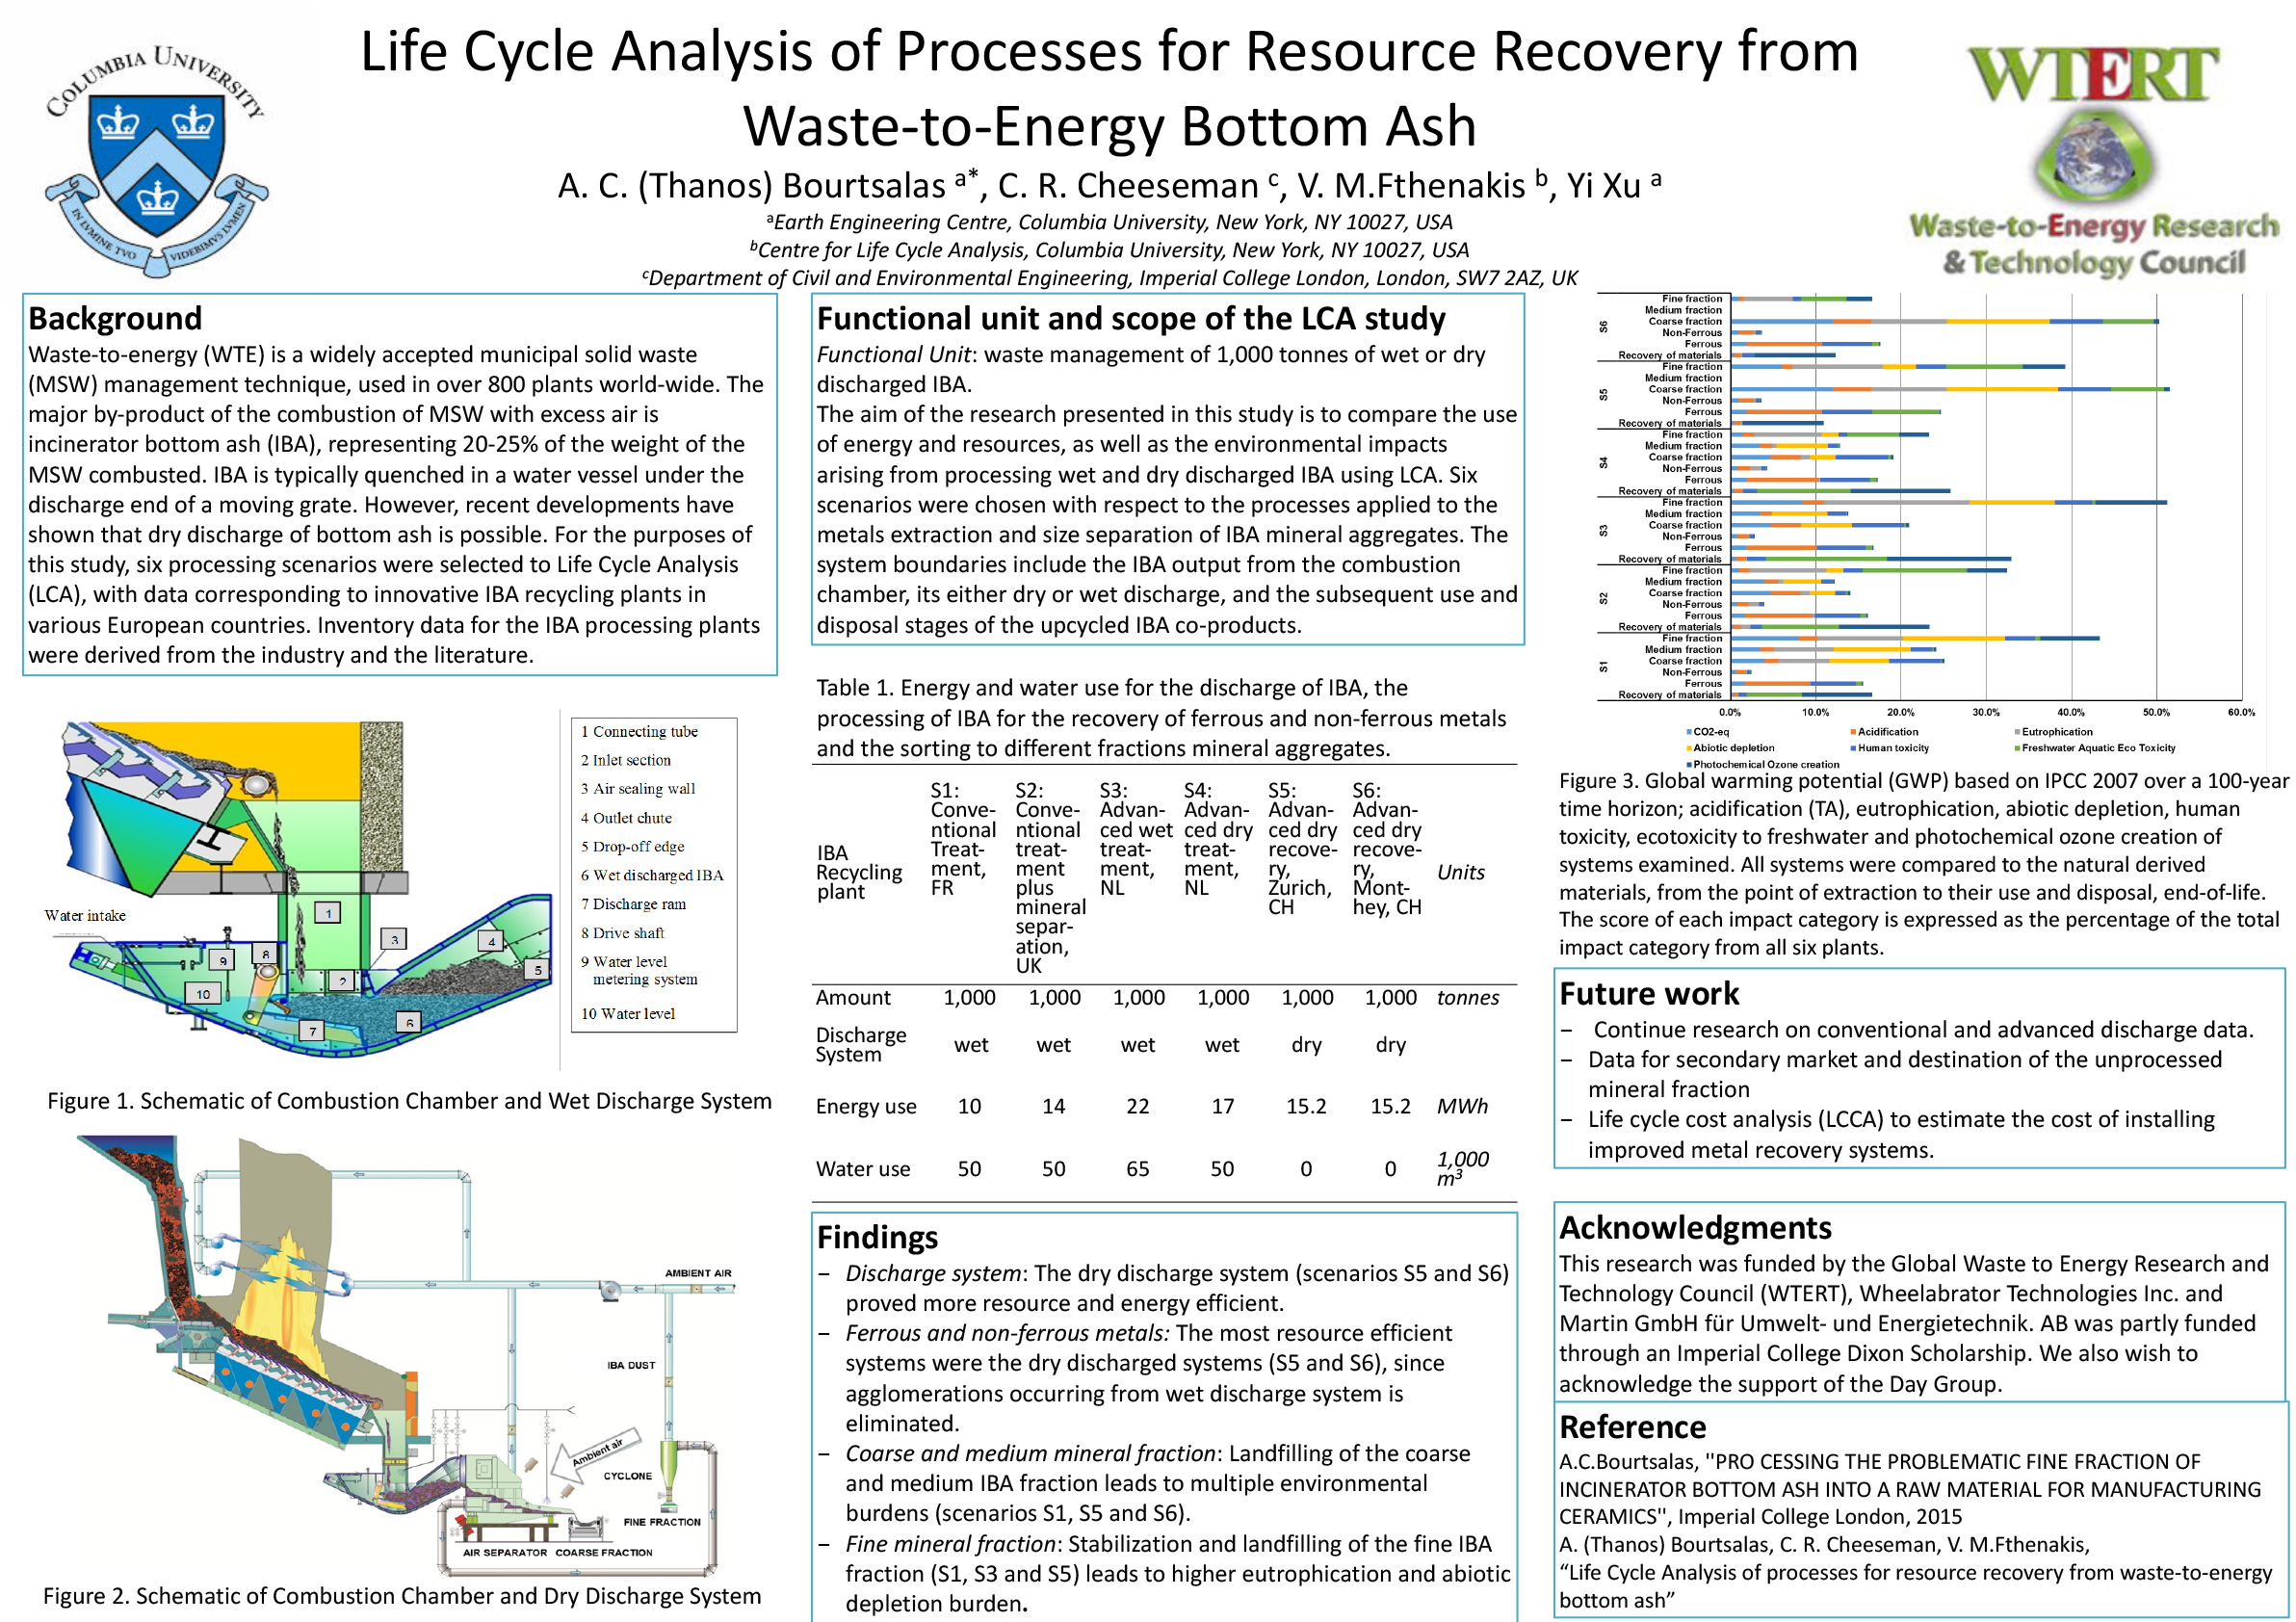 Life Cycle Analysis of Processes for Resource Recovery from Waste-to-Energy Bottom Ash